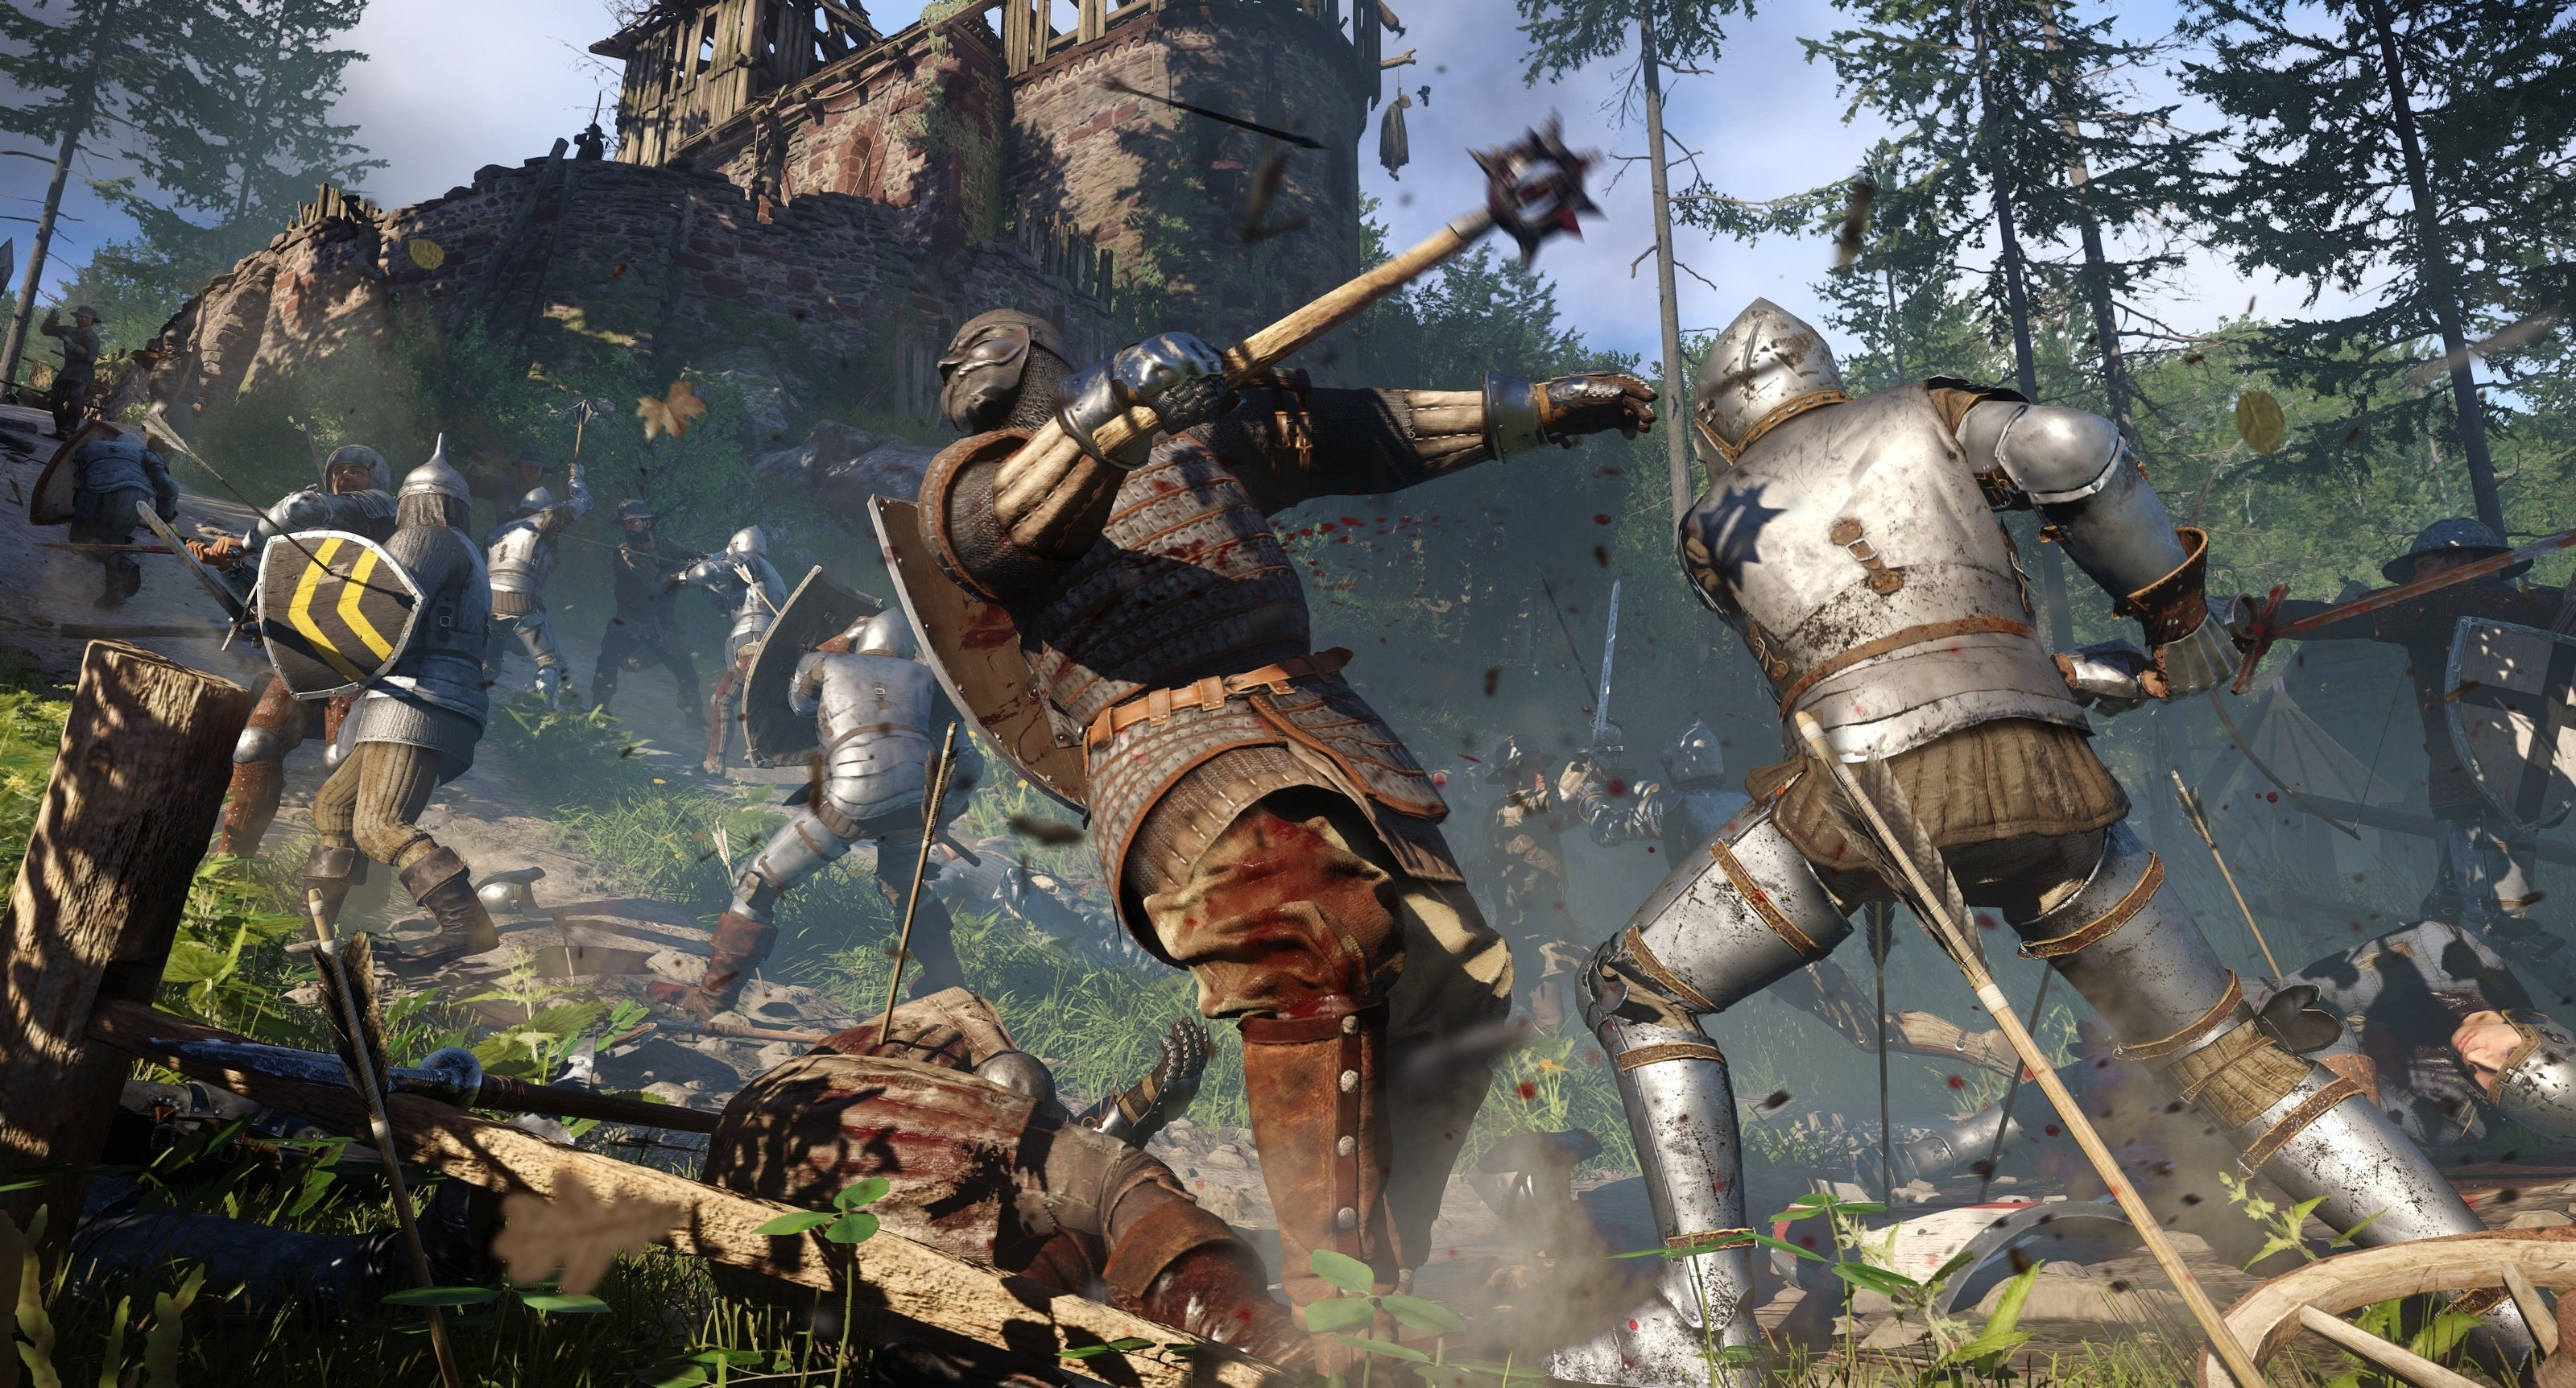 kingdom-come-deliverance-warhorse-studios-medieval-sim-action-rpg-single-player-playstation-4-xbox-one-pc-screenshots